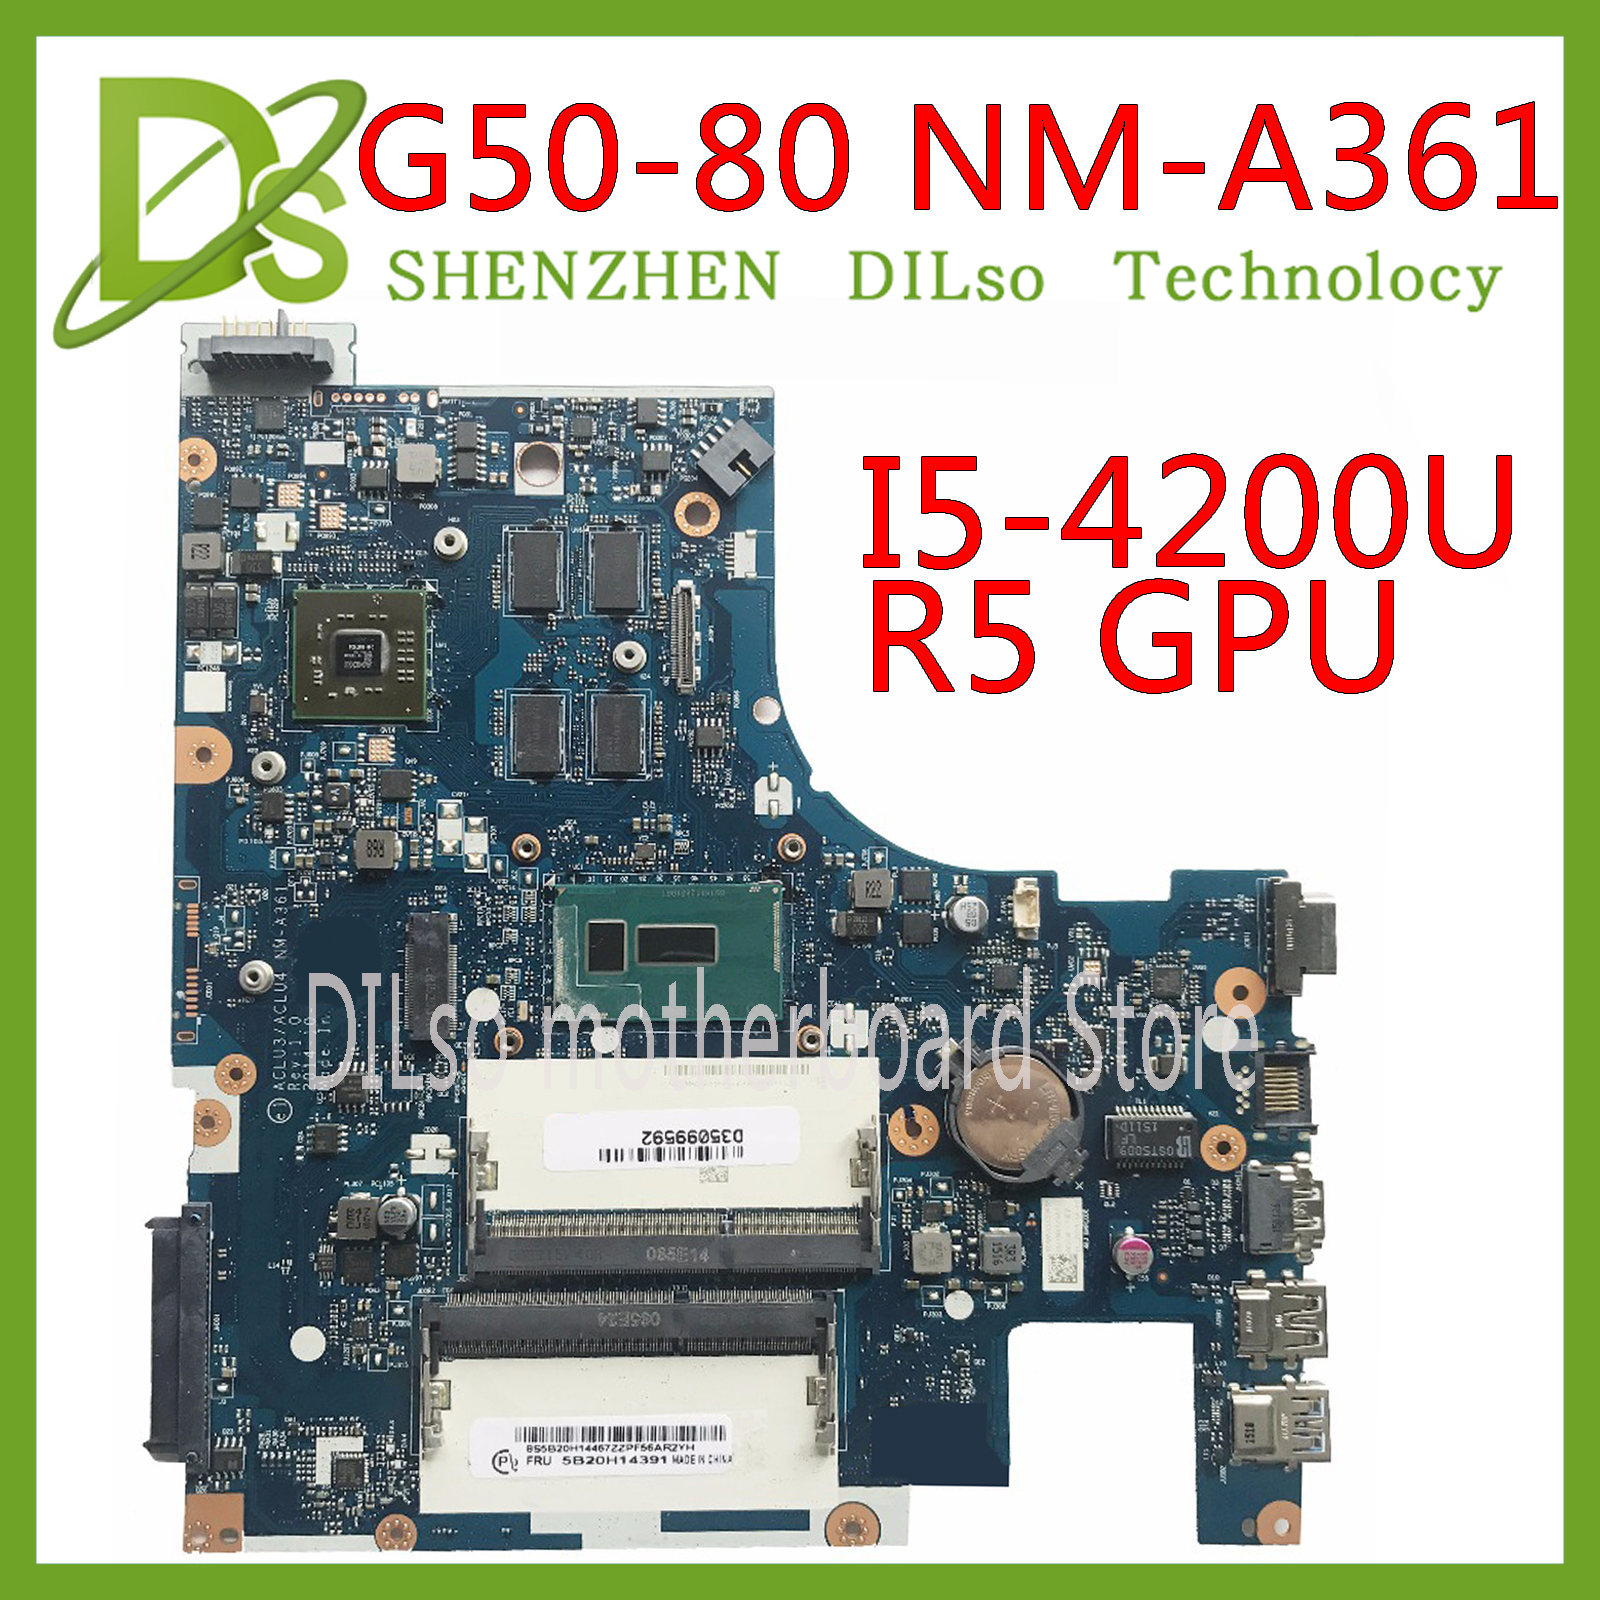 KEFU <font><b>NM</b></font>-<font><b>A361</b></font> motherboard for Lenovo G50-80 laptop motherboard G50-80 ACLU3/ACLU4 <font><b>NM</b></font>-<font><b>A361</b></font> I5-4200U R5 GPU original 100% Tested image